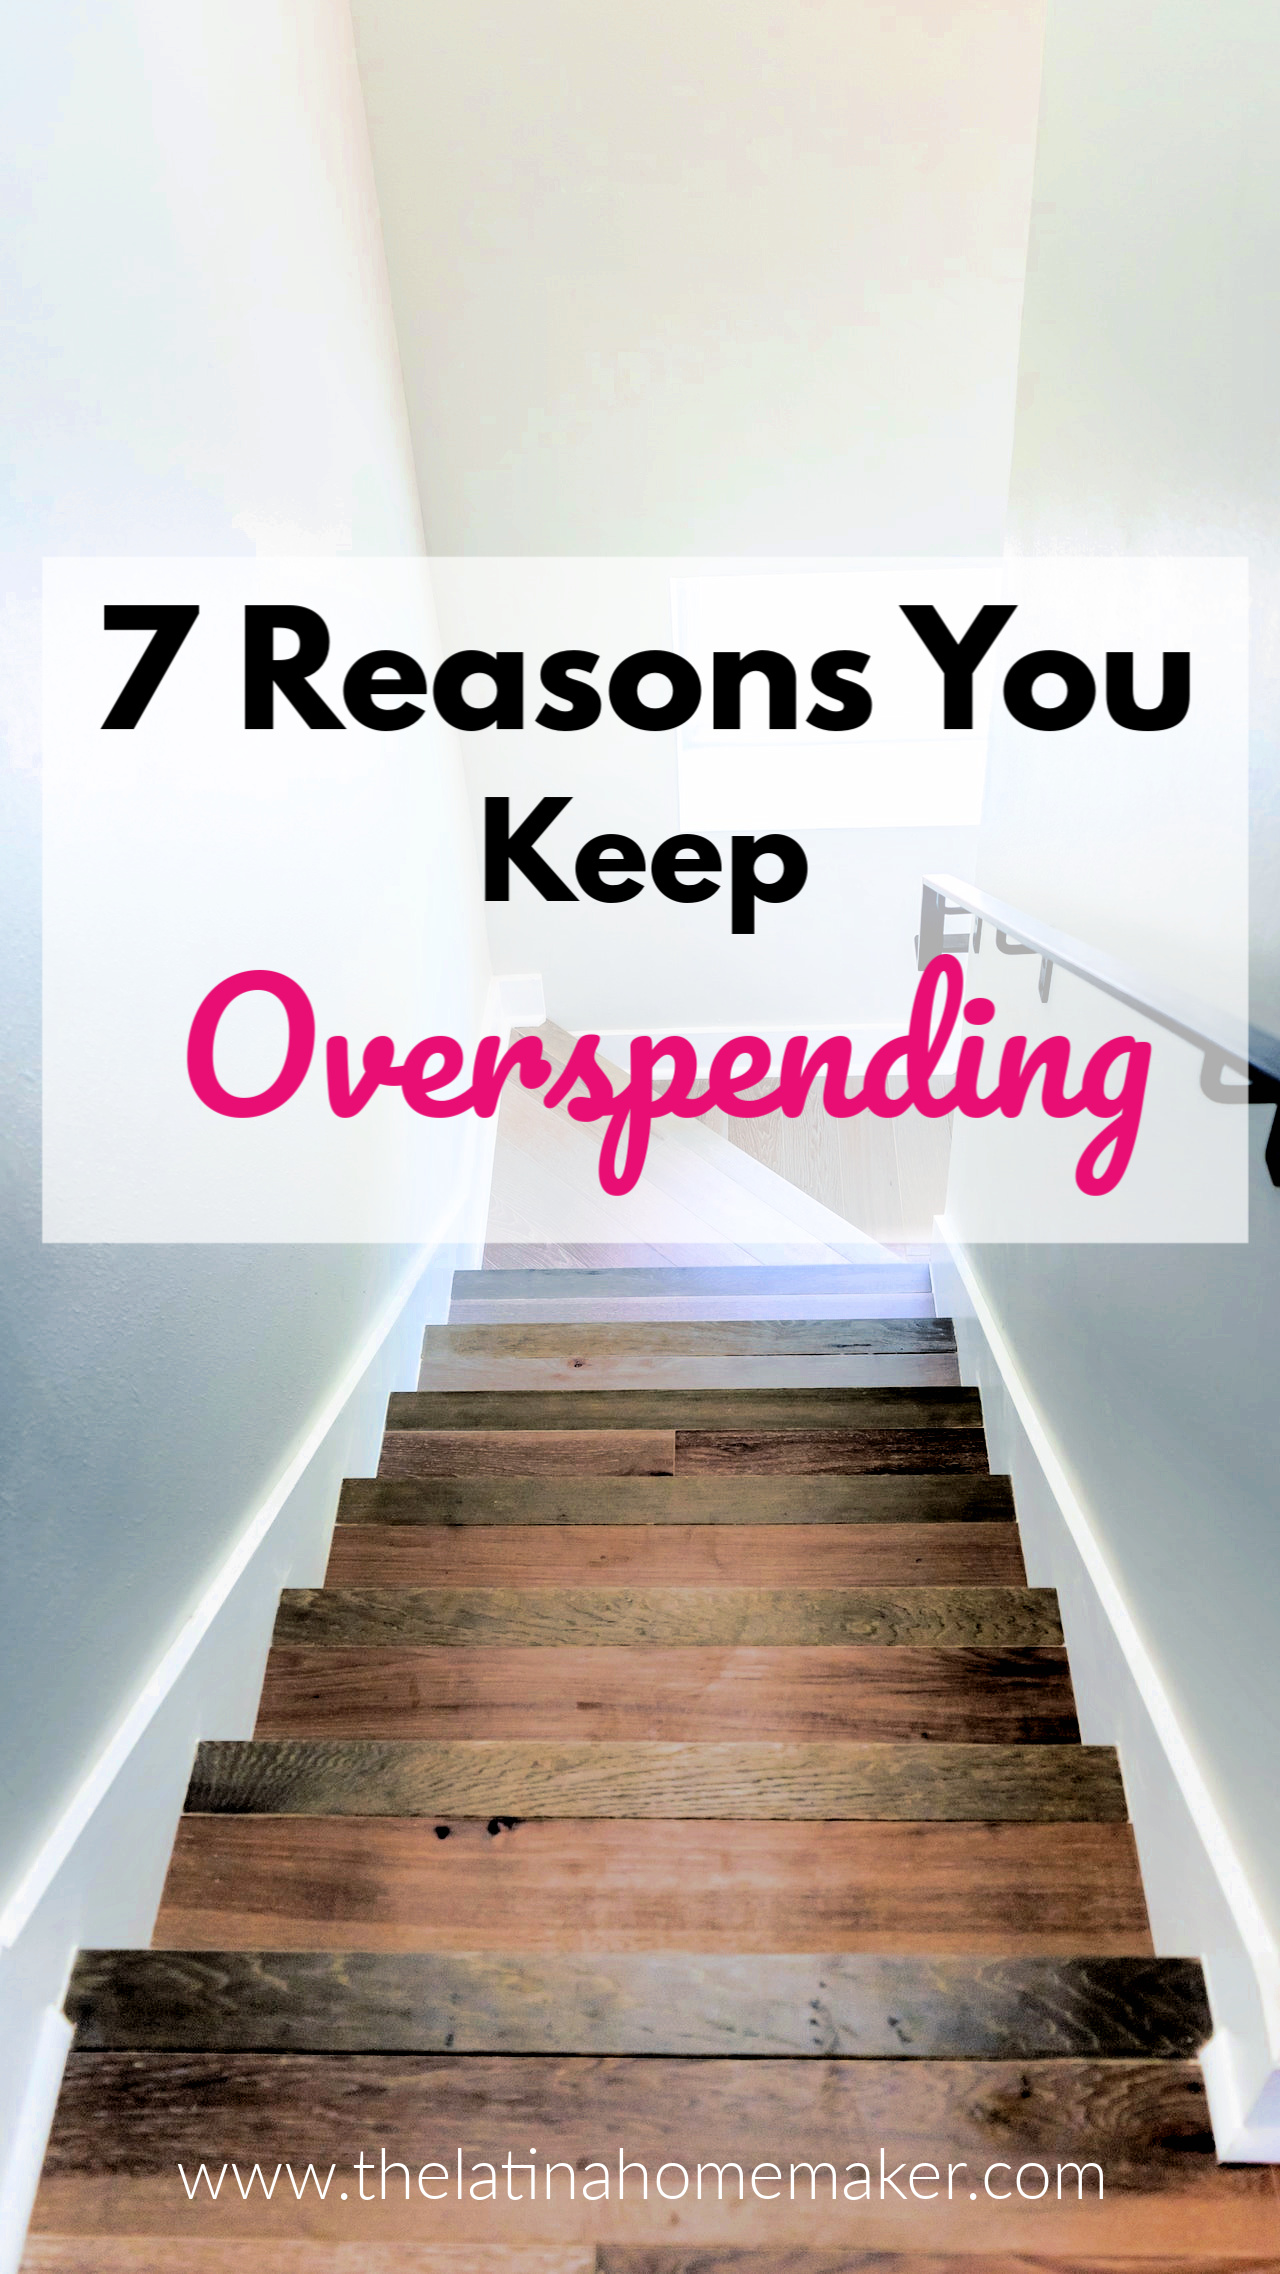 7 Reasons You Keep Overspending